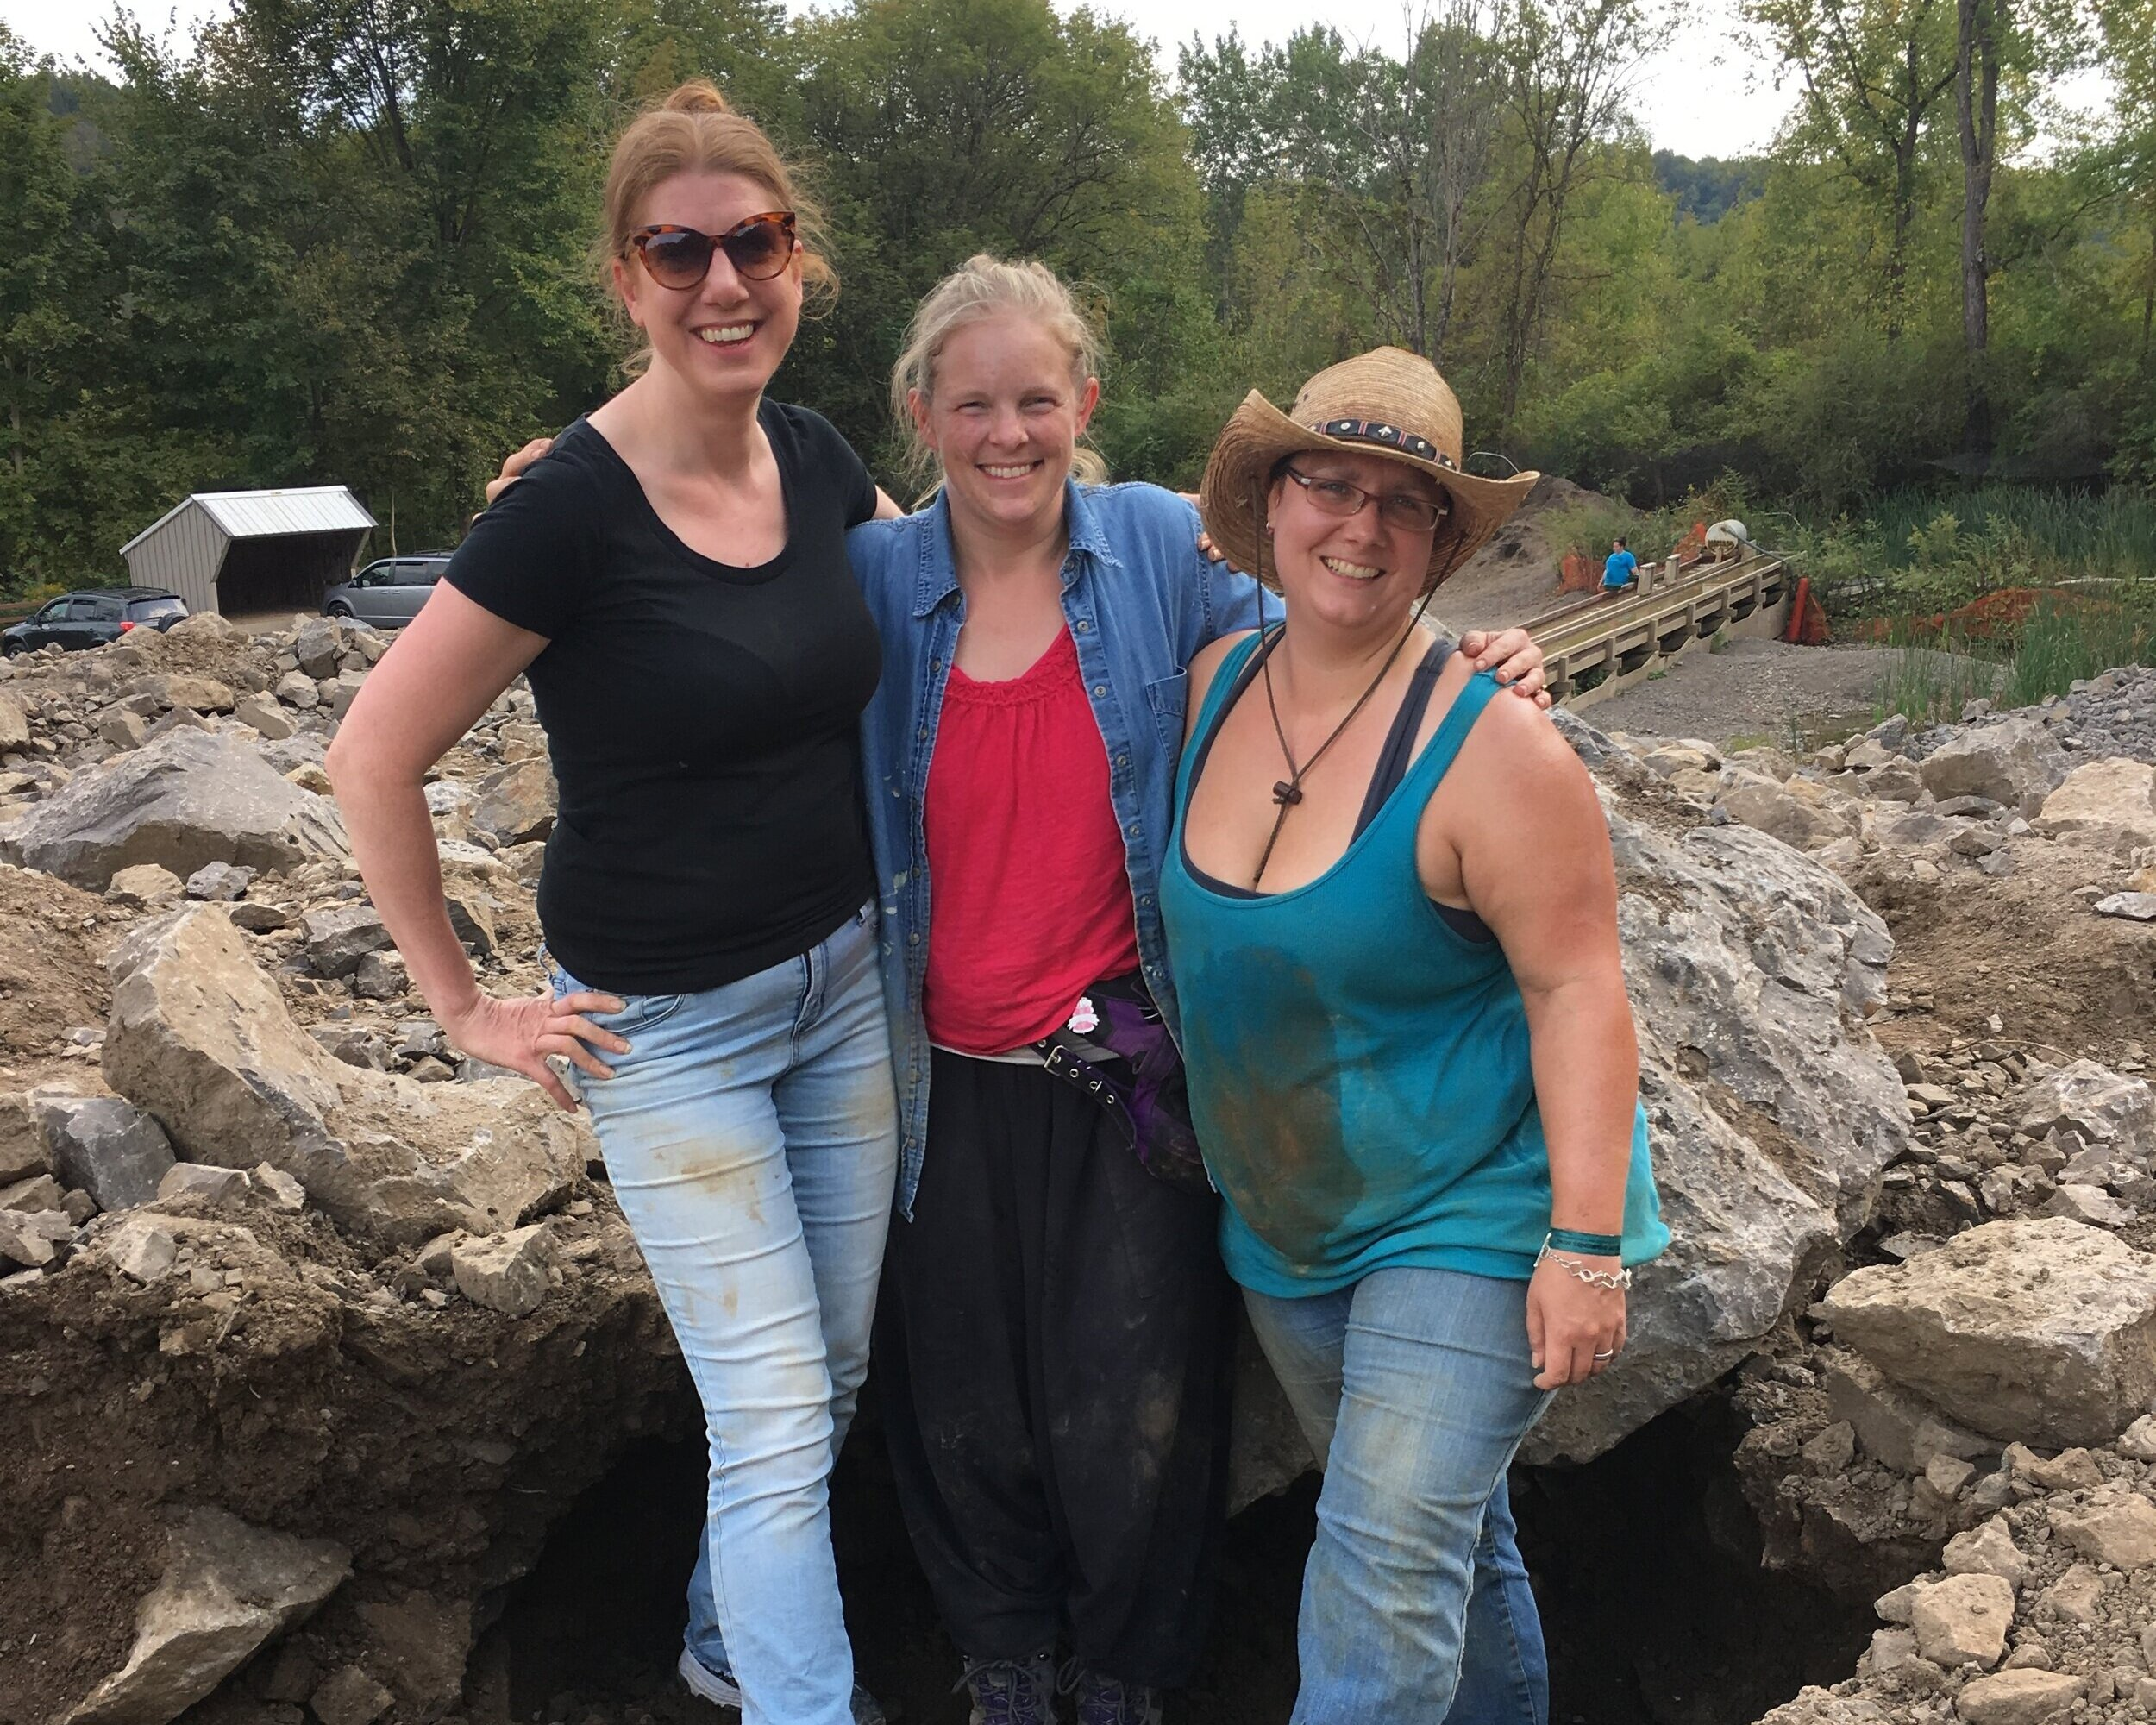 Sweaty, sunburnt, sore and smiling! Jewelry designers and friends (left to right) Michelle Pajak-Reynolds, Valerie Heck Esmont, and Trista Bonnett after 2 days of mining for Herkimer Diamonds at Ace of Diamonds Mine in Middleville, New York. Photo credit: Fellow miner at Ace of Diamonds Mine.